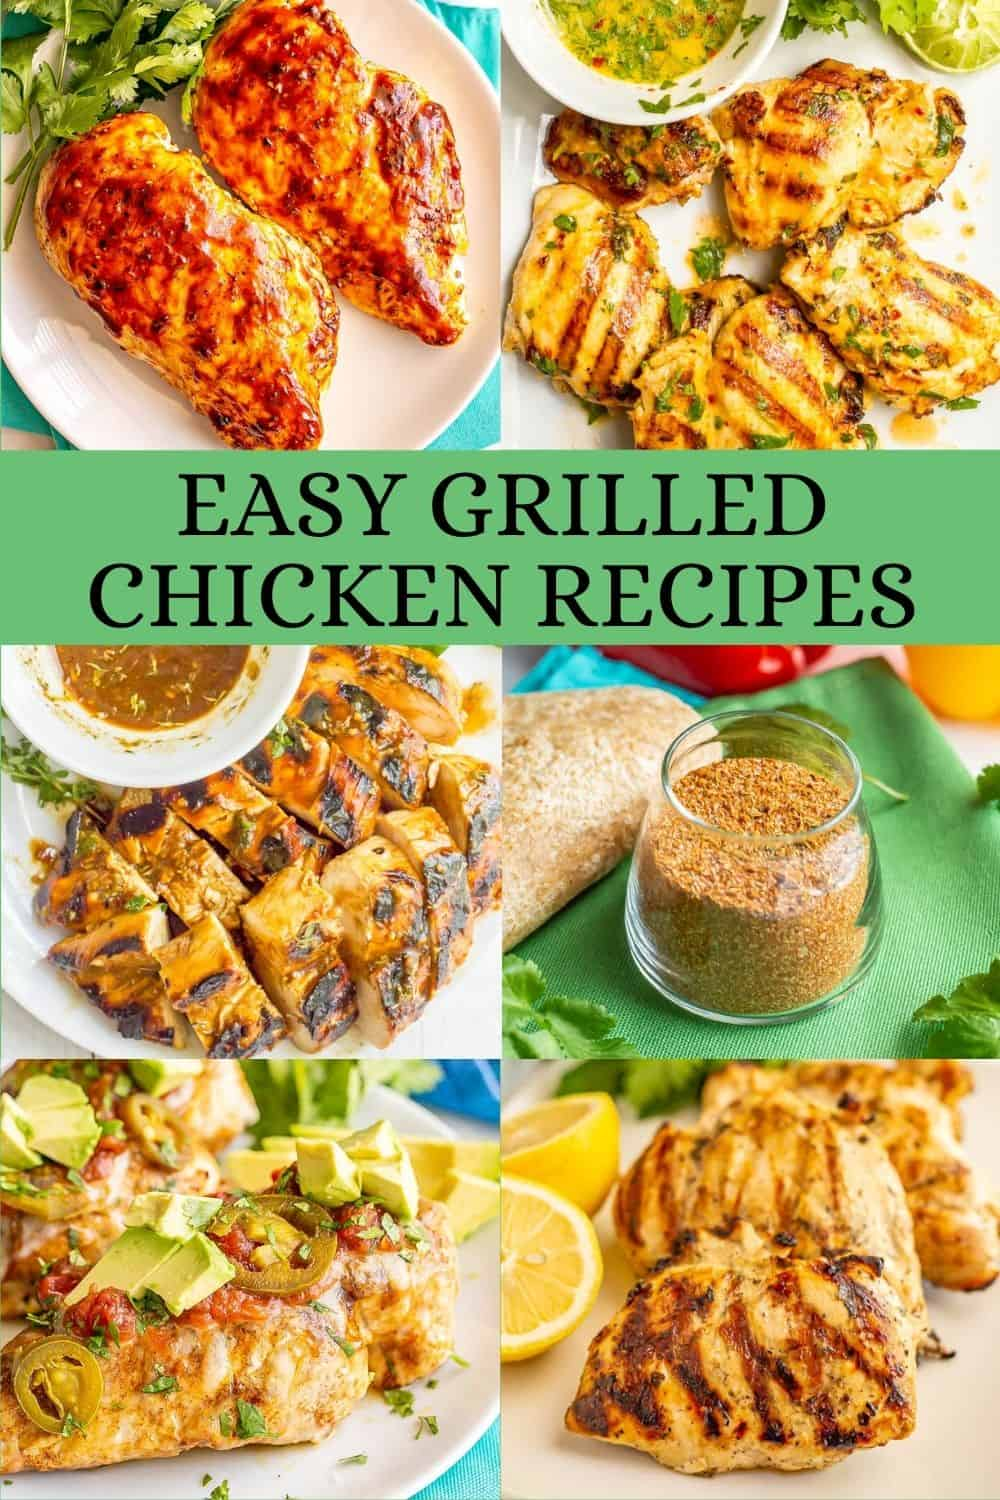 A collage of 6 photos of grilled chicken with marinades or rubs with a text block in the middle